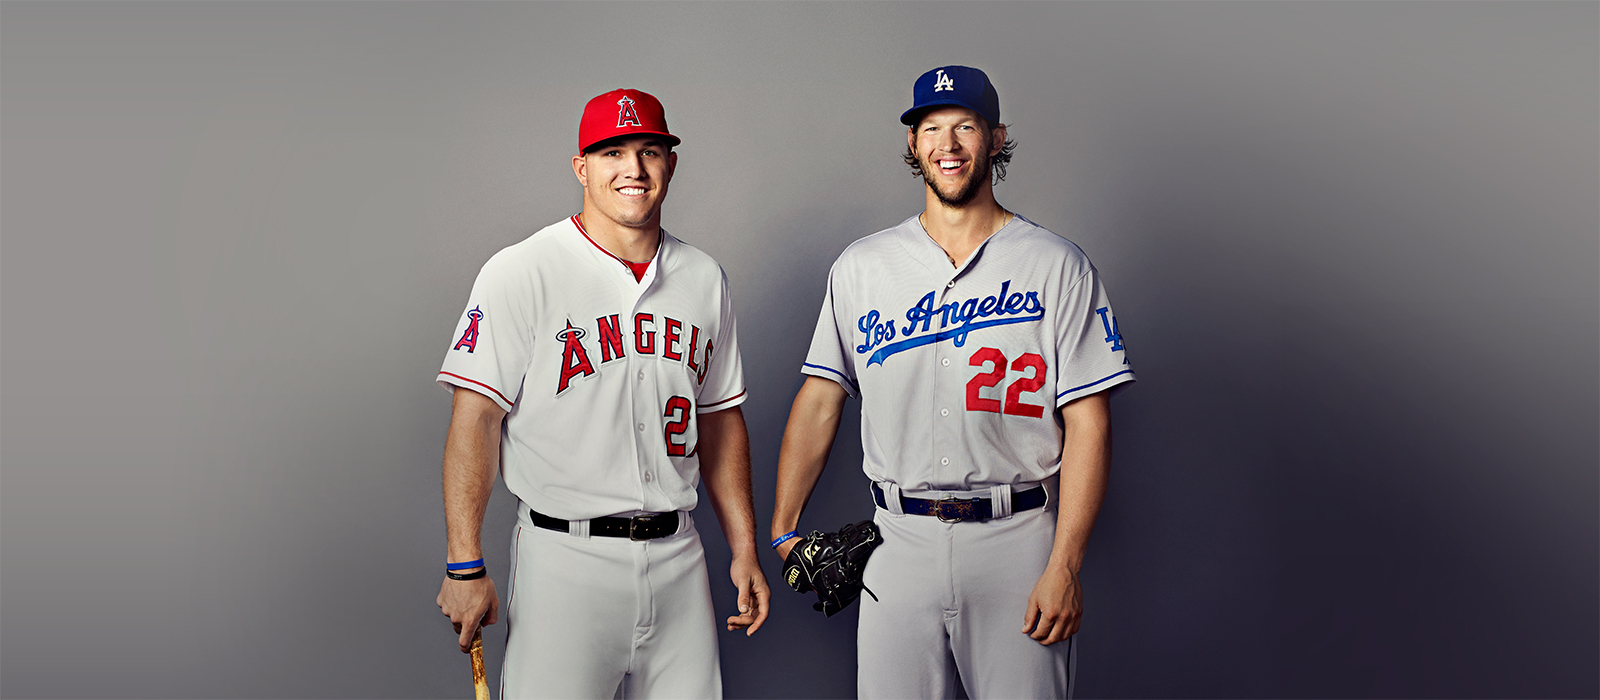 Los Angeles Angels Mike Trout And Los Angeles Dodgers Clayton